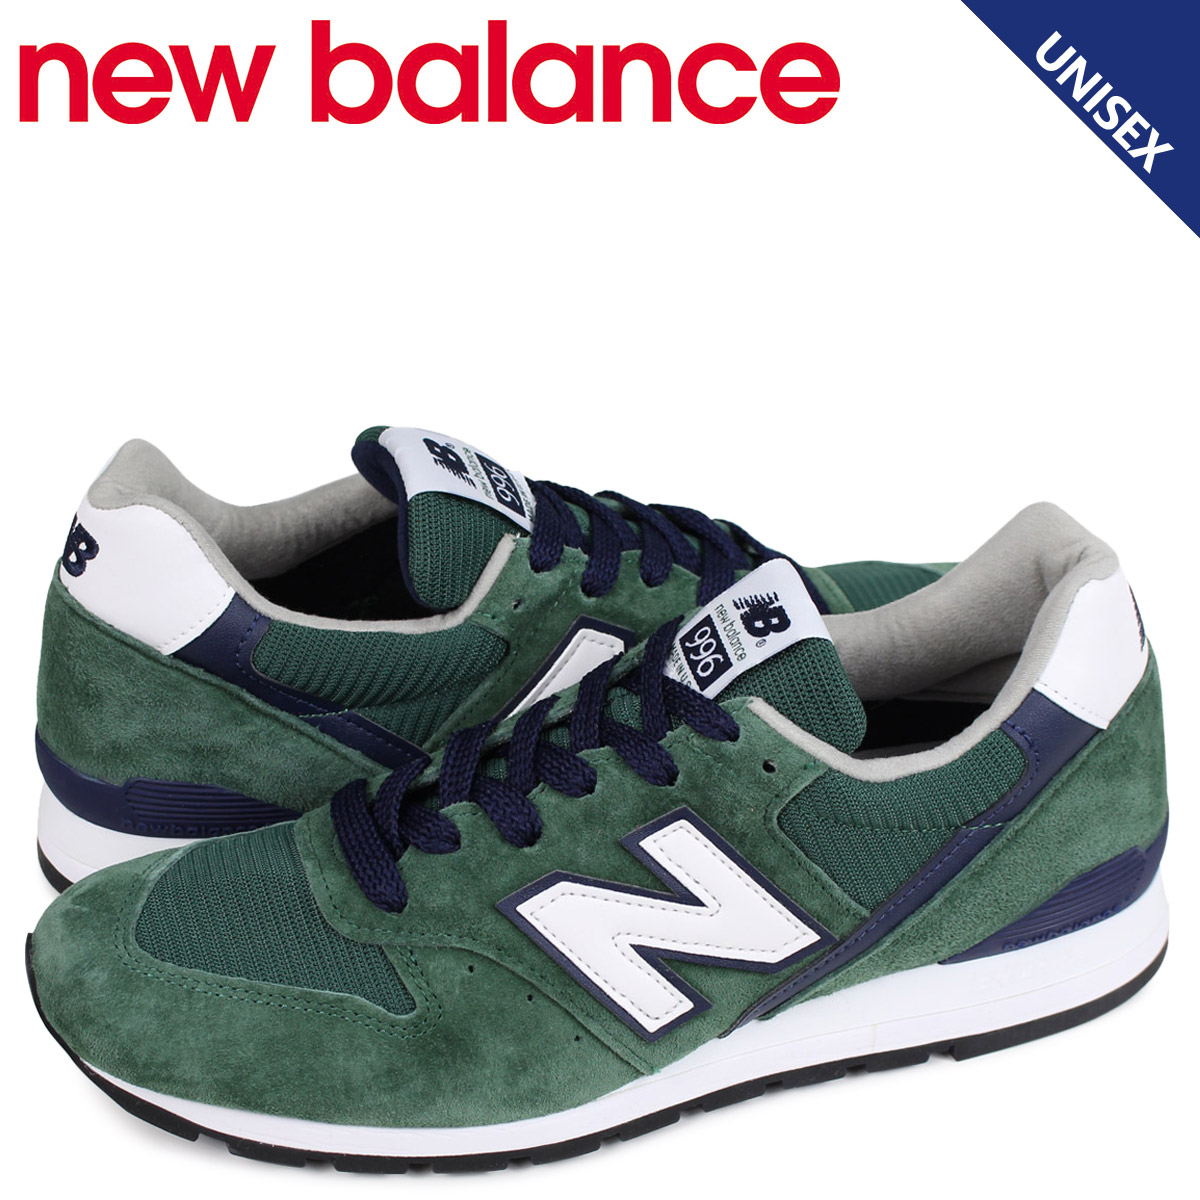 new concept 17ebf 71072 New Balance new balance 996 men s lady s sneakers USA M996CSL D Wise green  ...